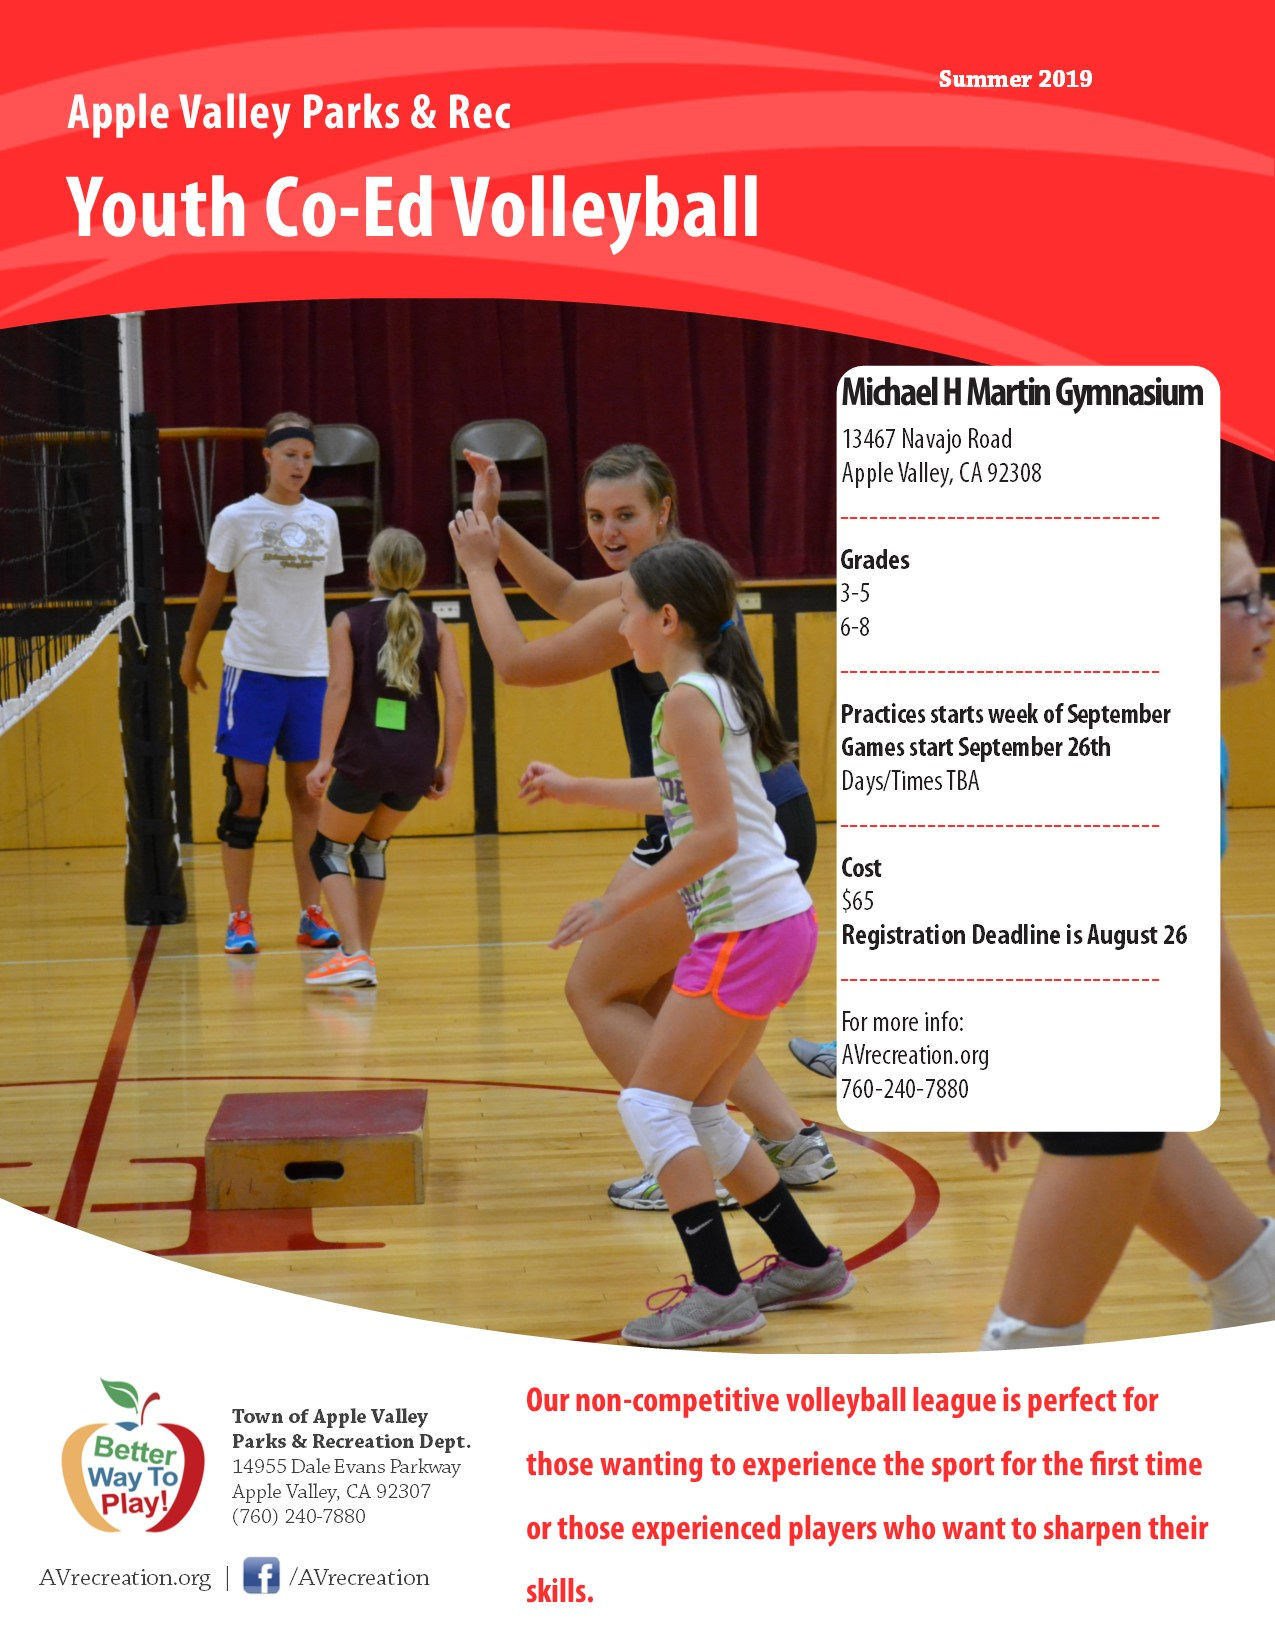 Youth Co-ed Volleyball